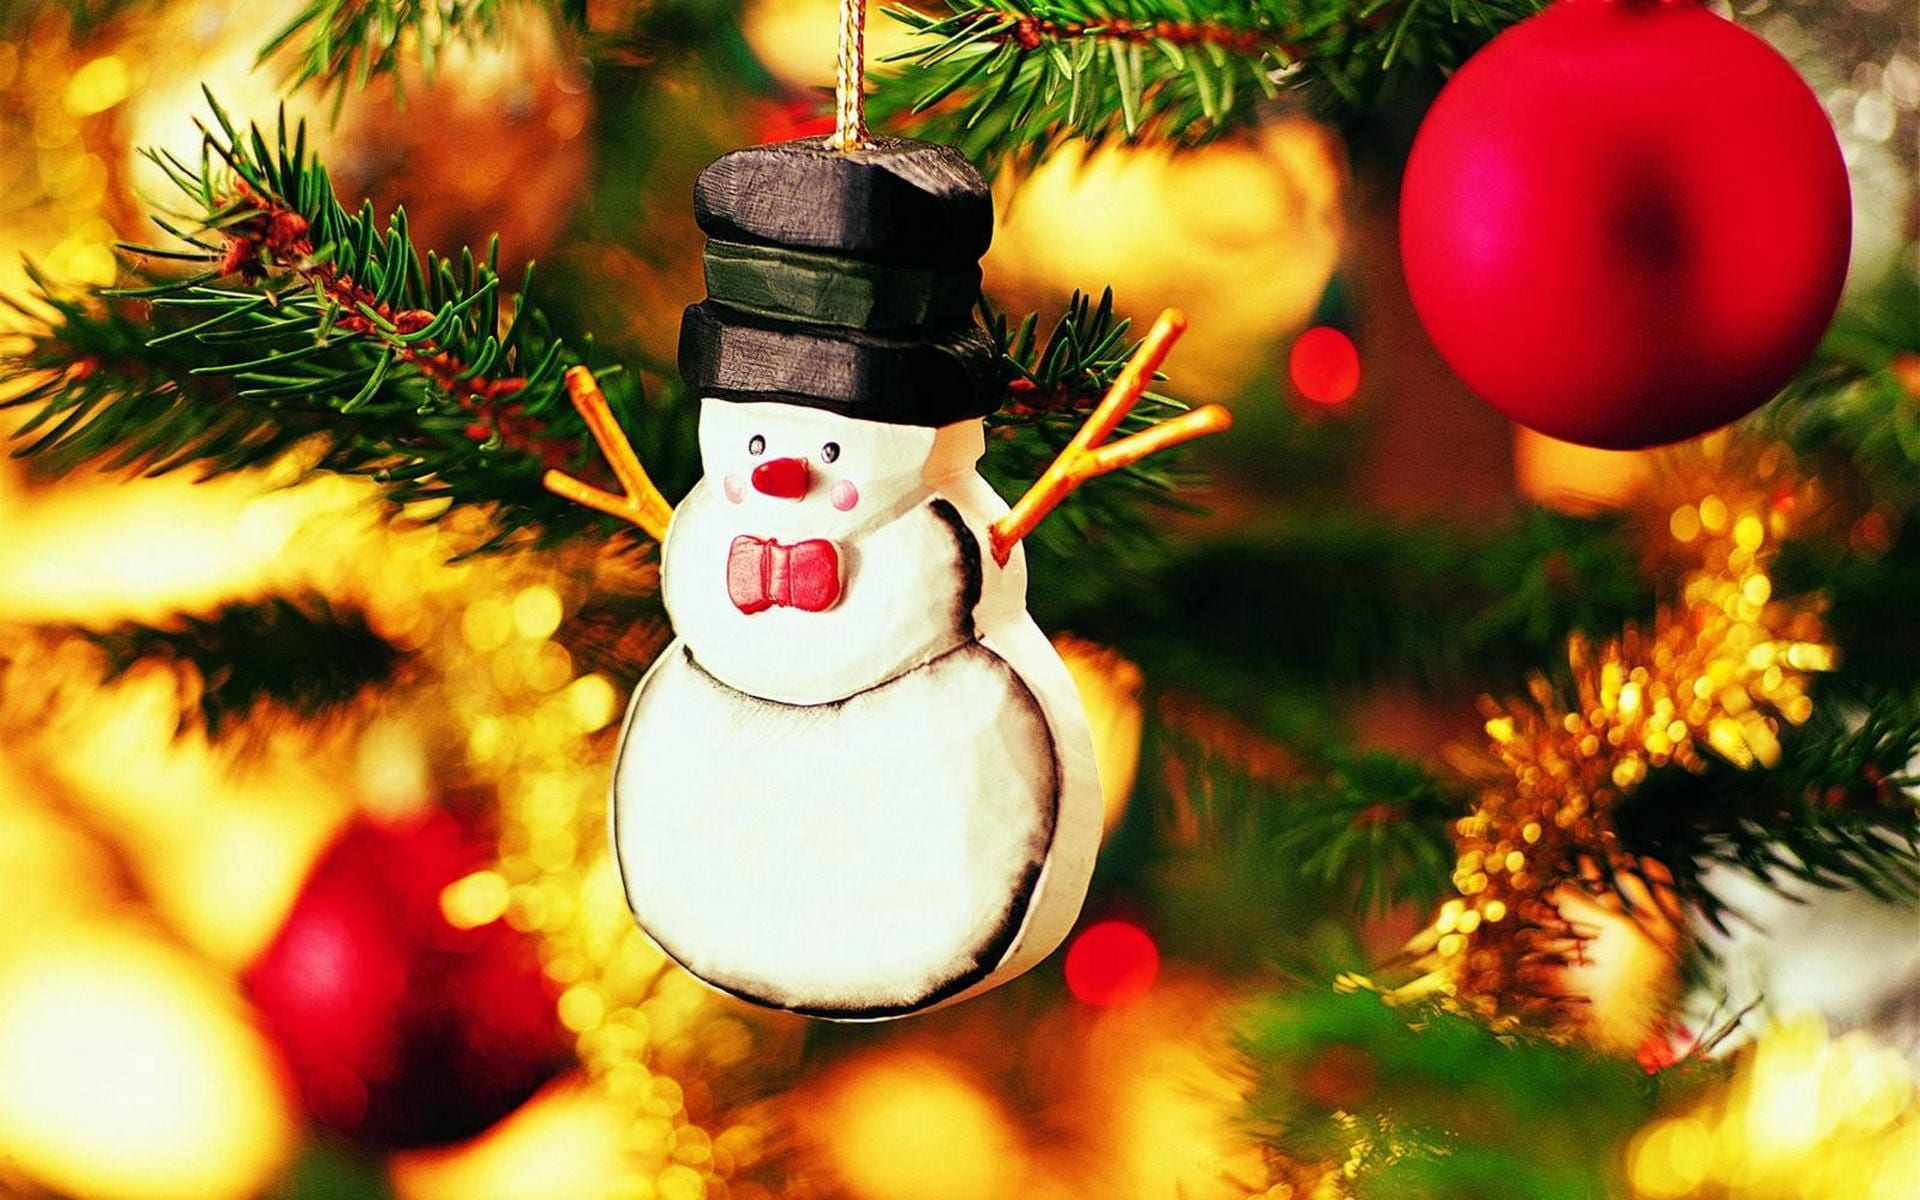 Get Free Christmas Images Here